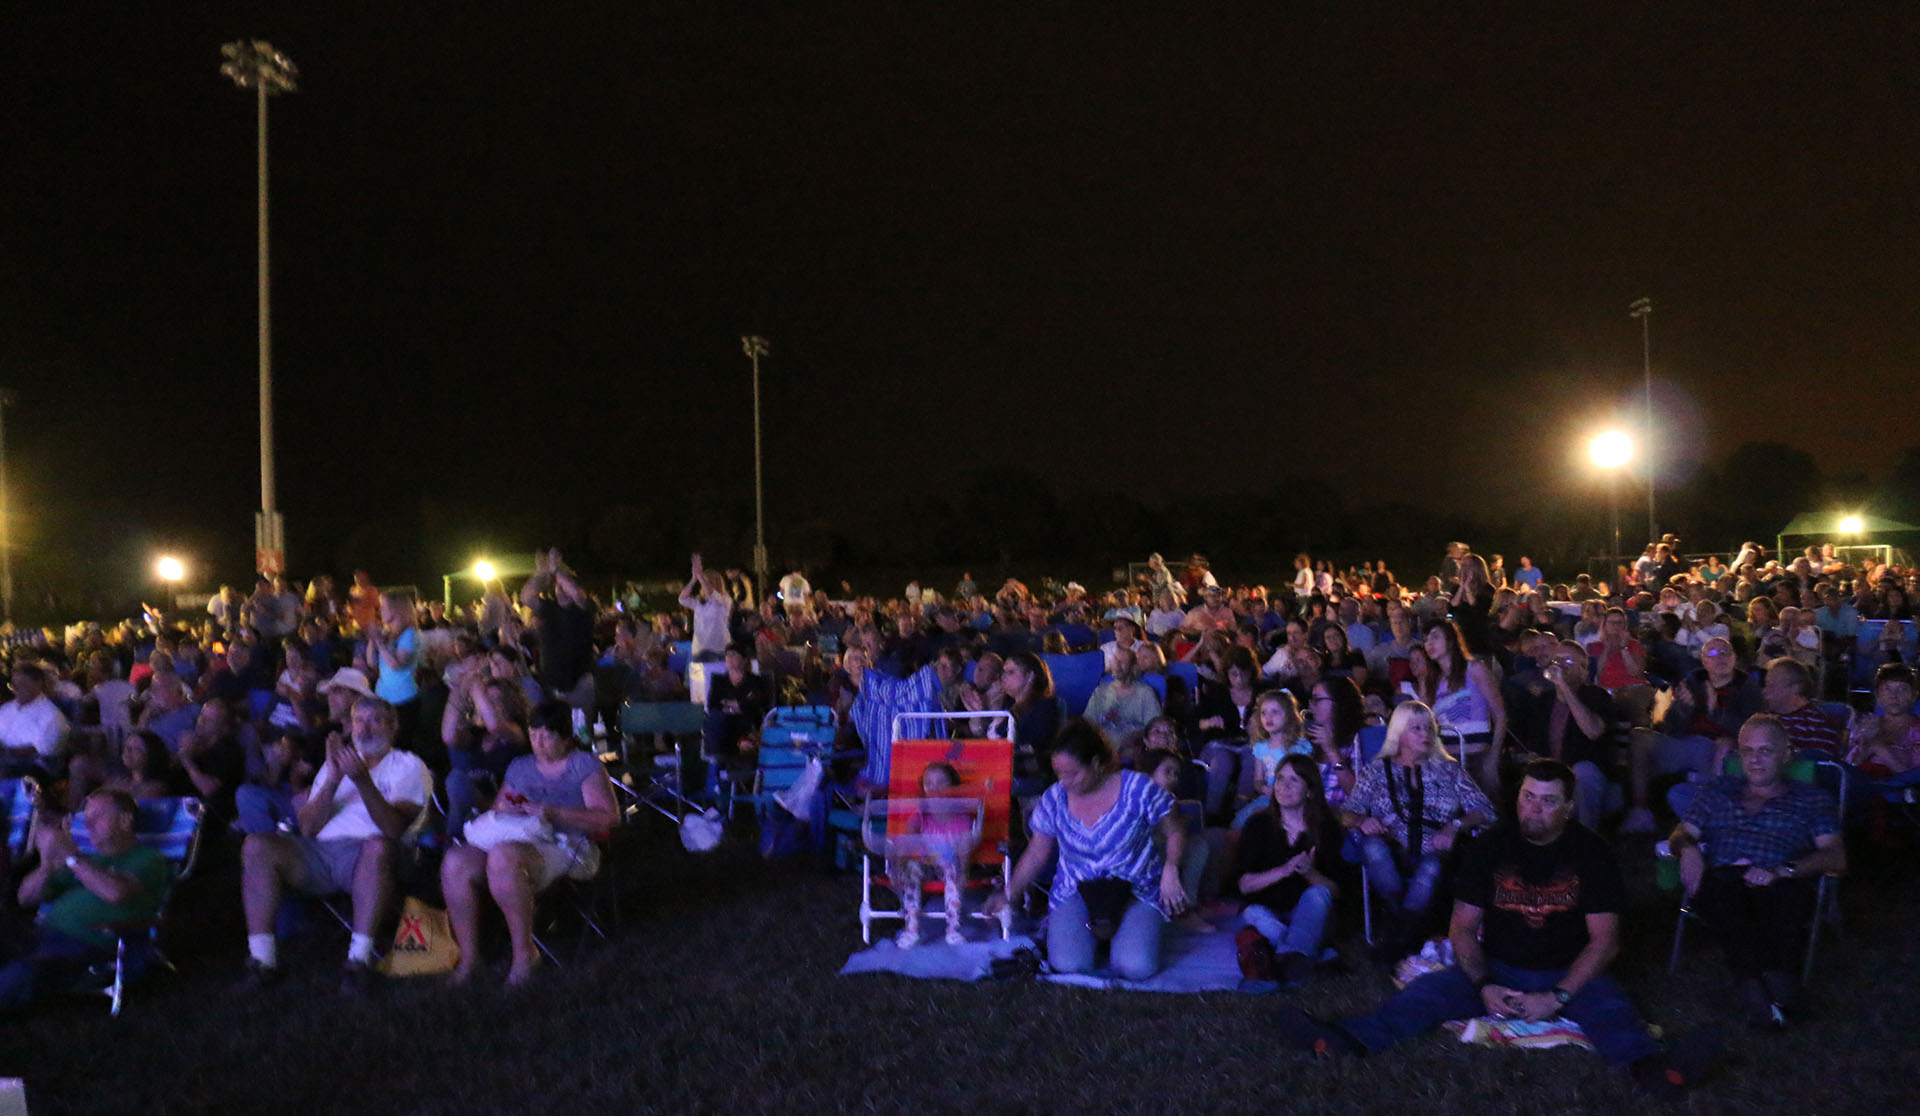 audience at outdoor concert in the park